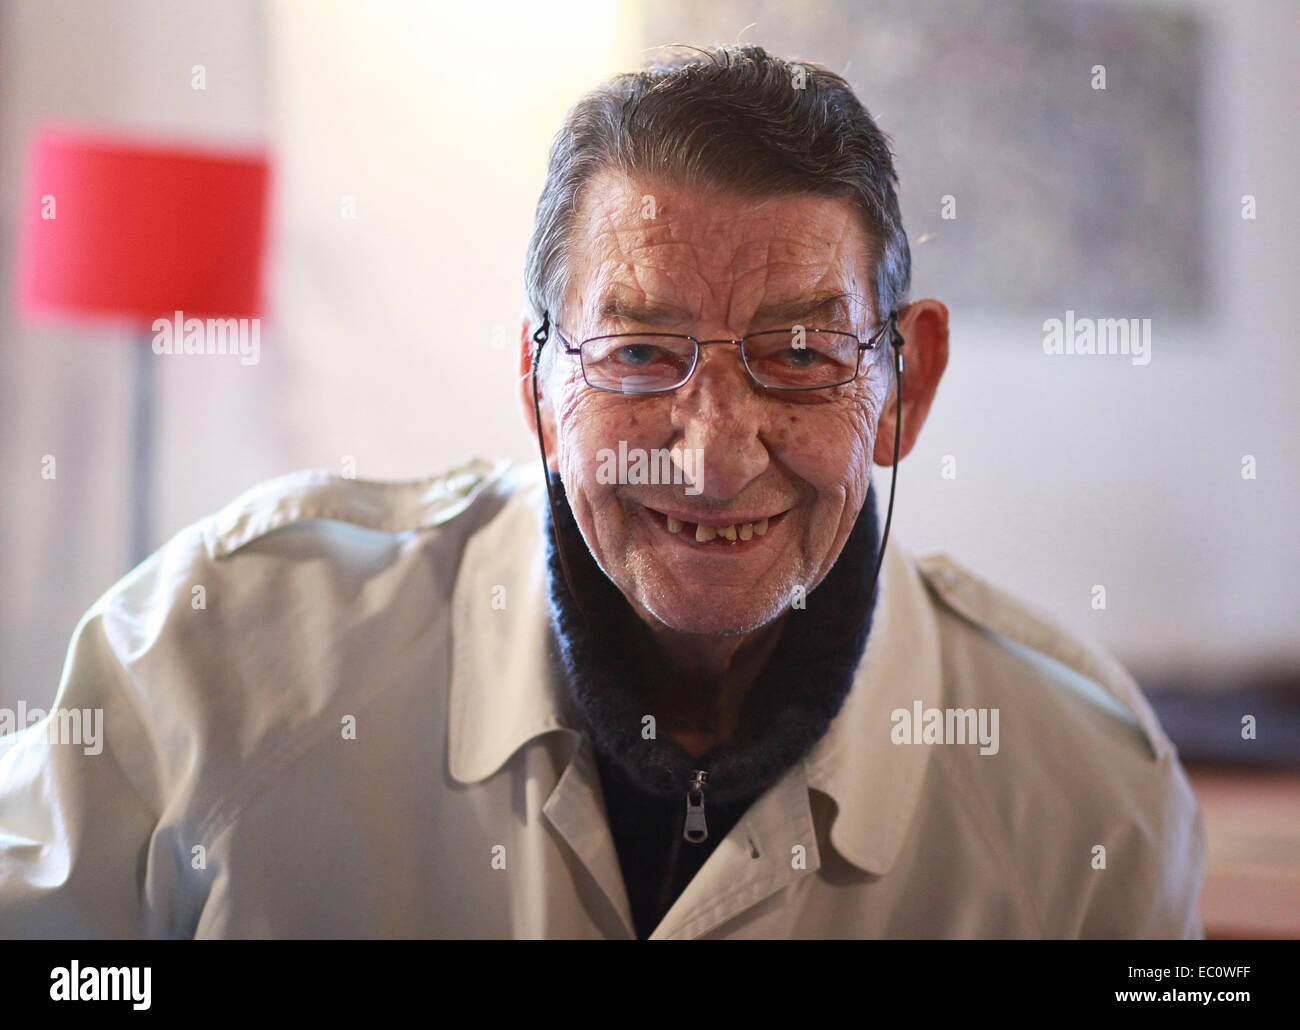 Portrait of a satisfied, over 80 years old senior citizen from Spilimbergo, Friuli-Venezia Giulia, northern Italy. - Stock Image